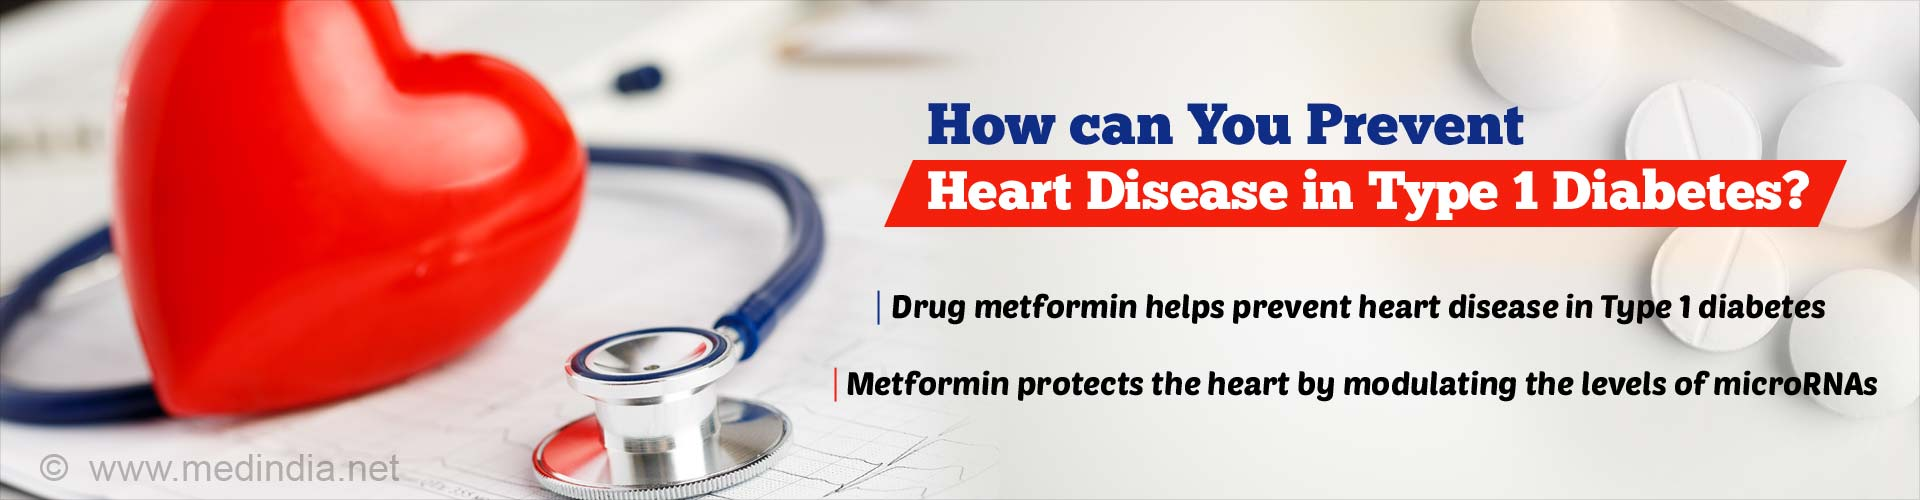 Metformin can Now Prevent Heart Disease in Type 1 Diabetes